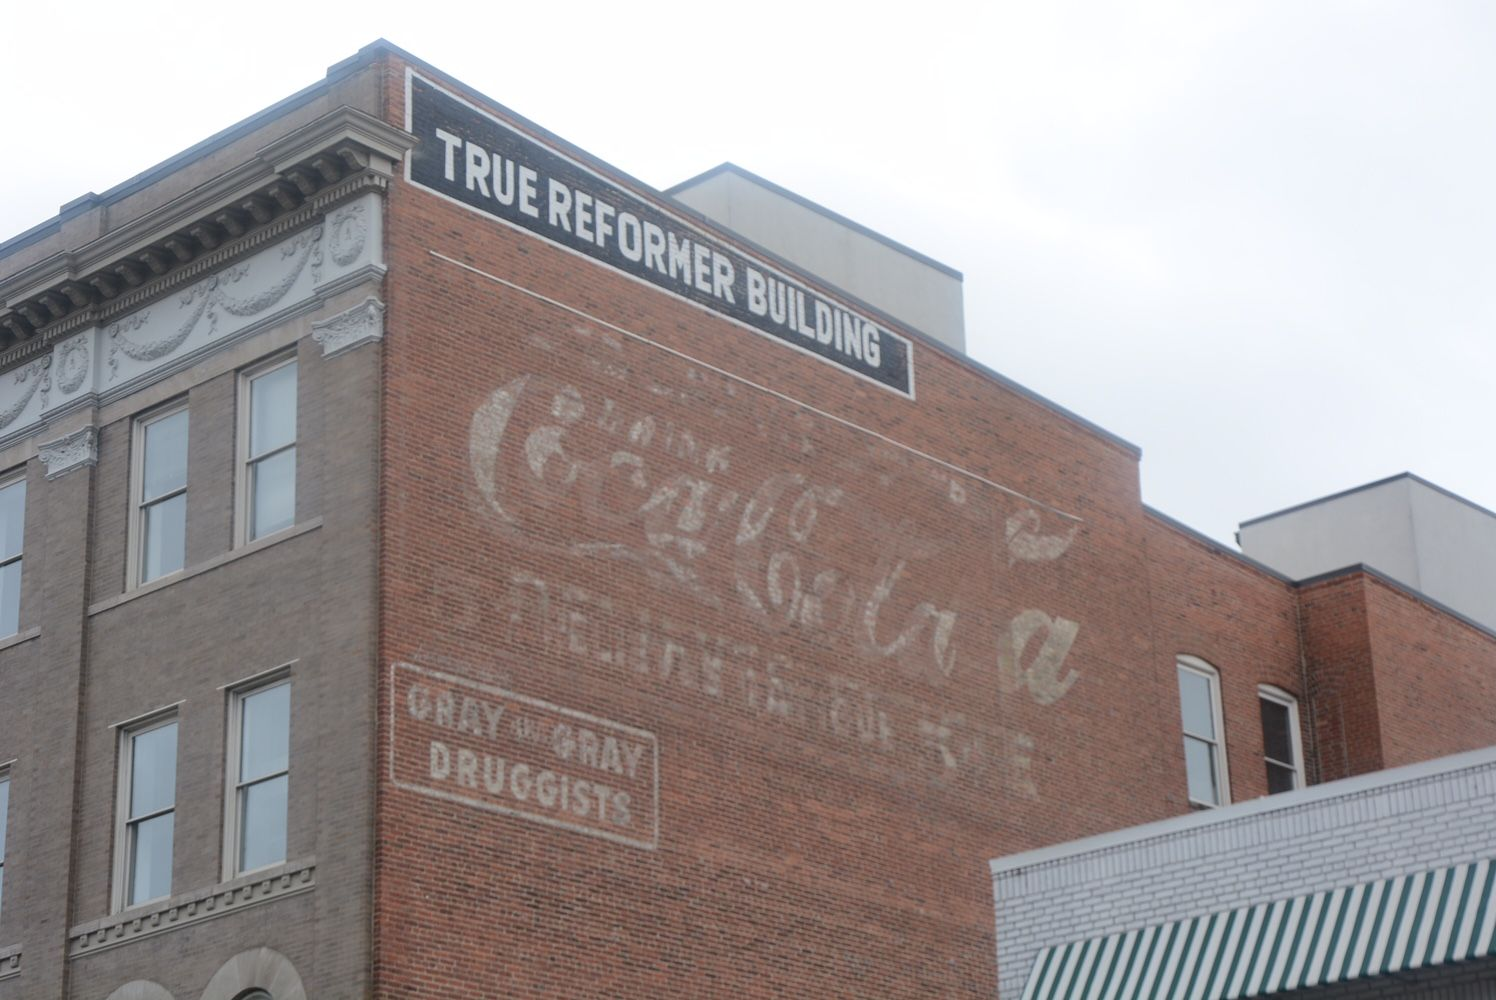 At the True Reformer Building (1200 U St. NW), a Coca-Cola sign has endured the years. (WTOP/Dave Dildine)